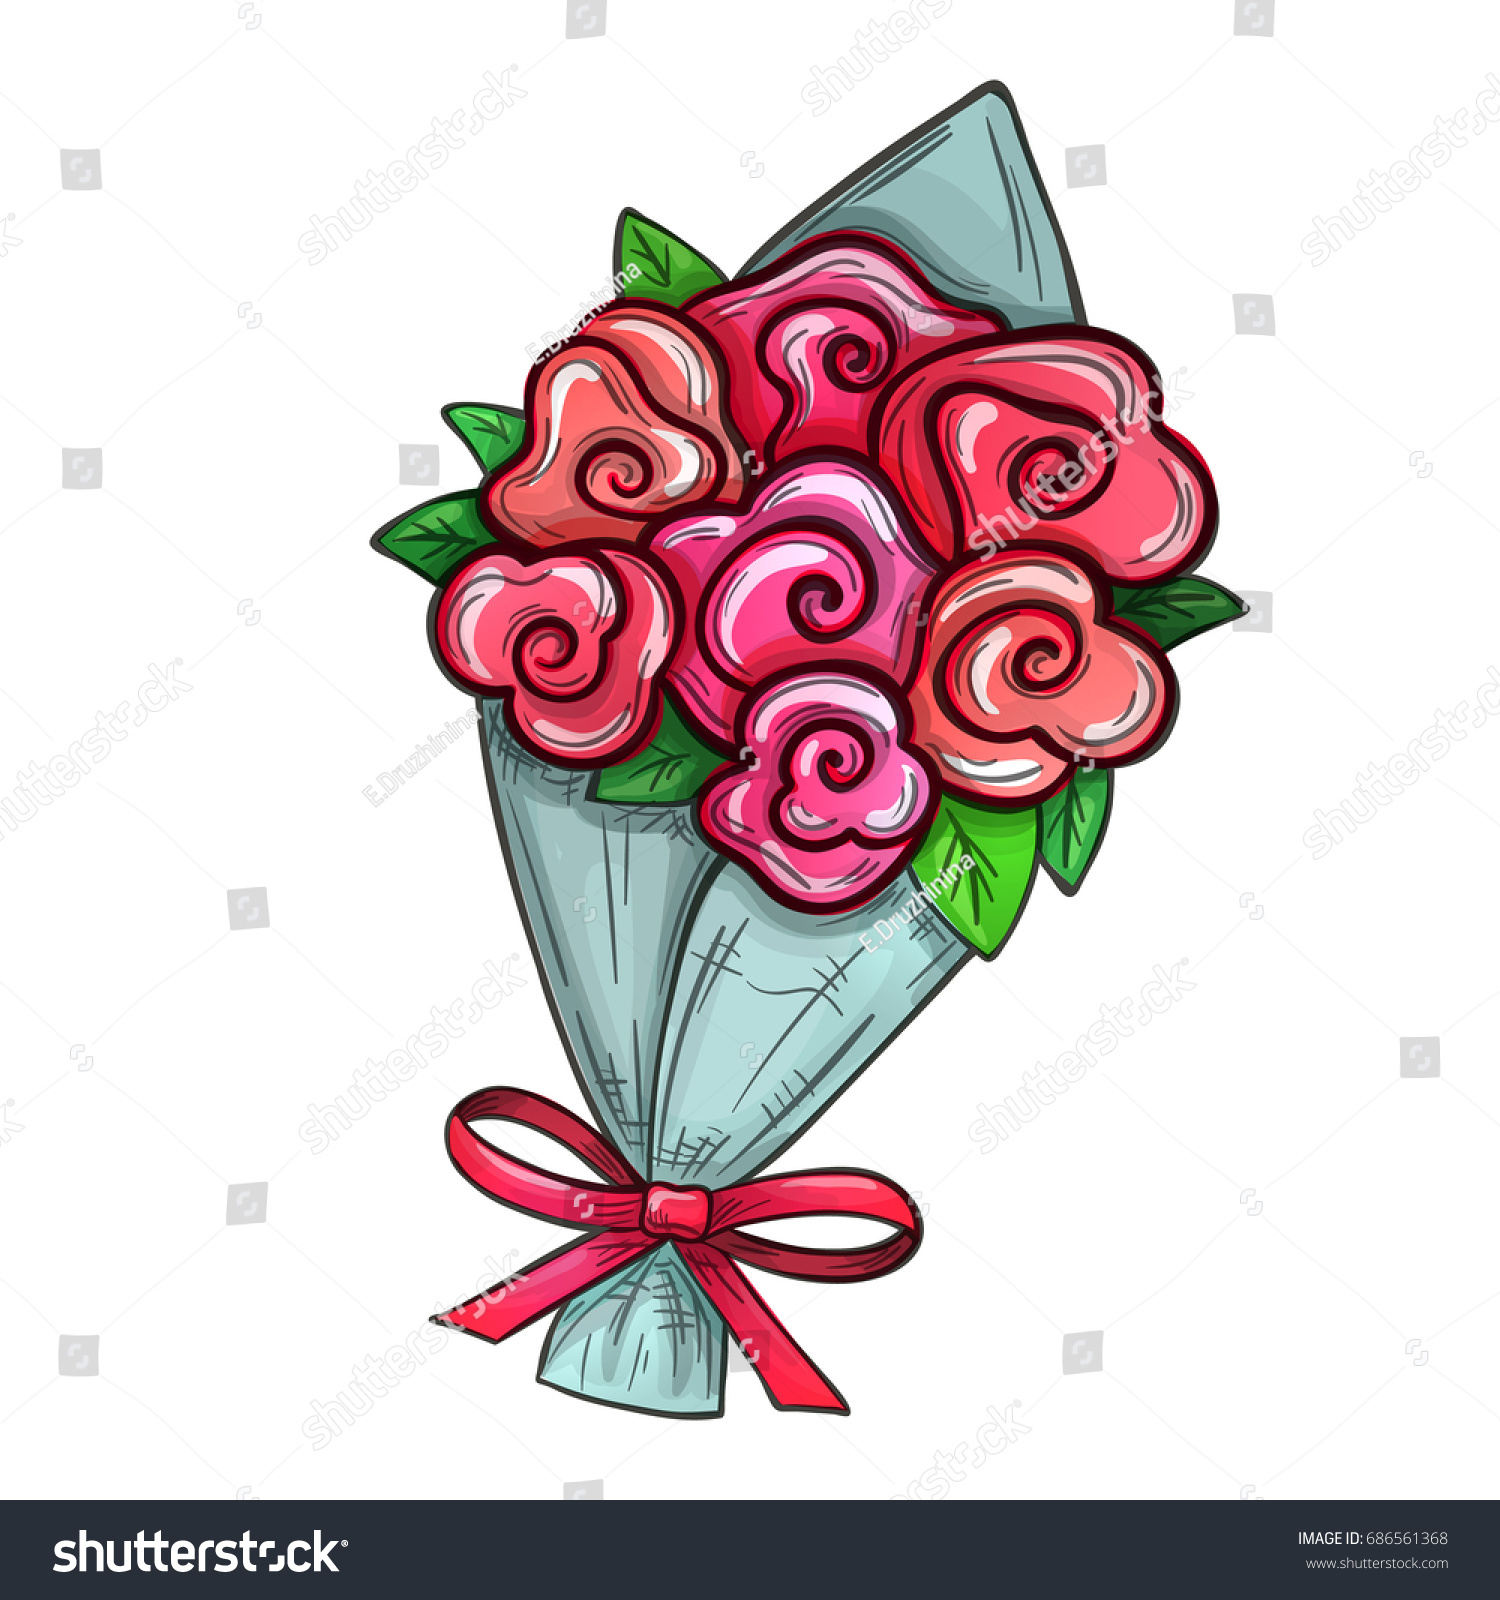 Colorful Sketch Style Illustration Bouquet Flowers Stock ...